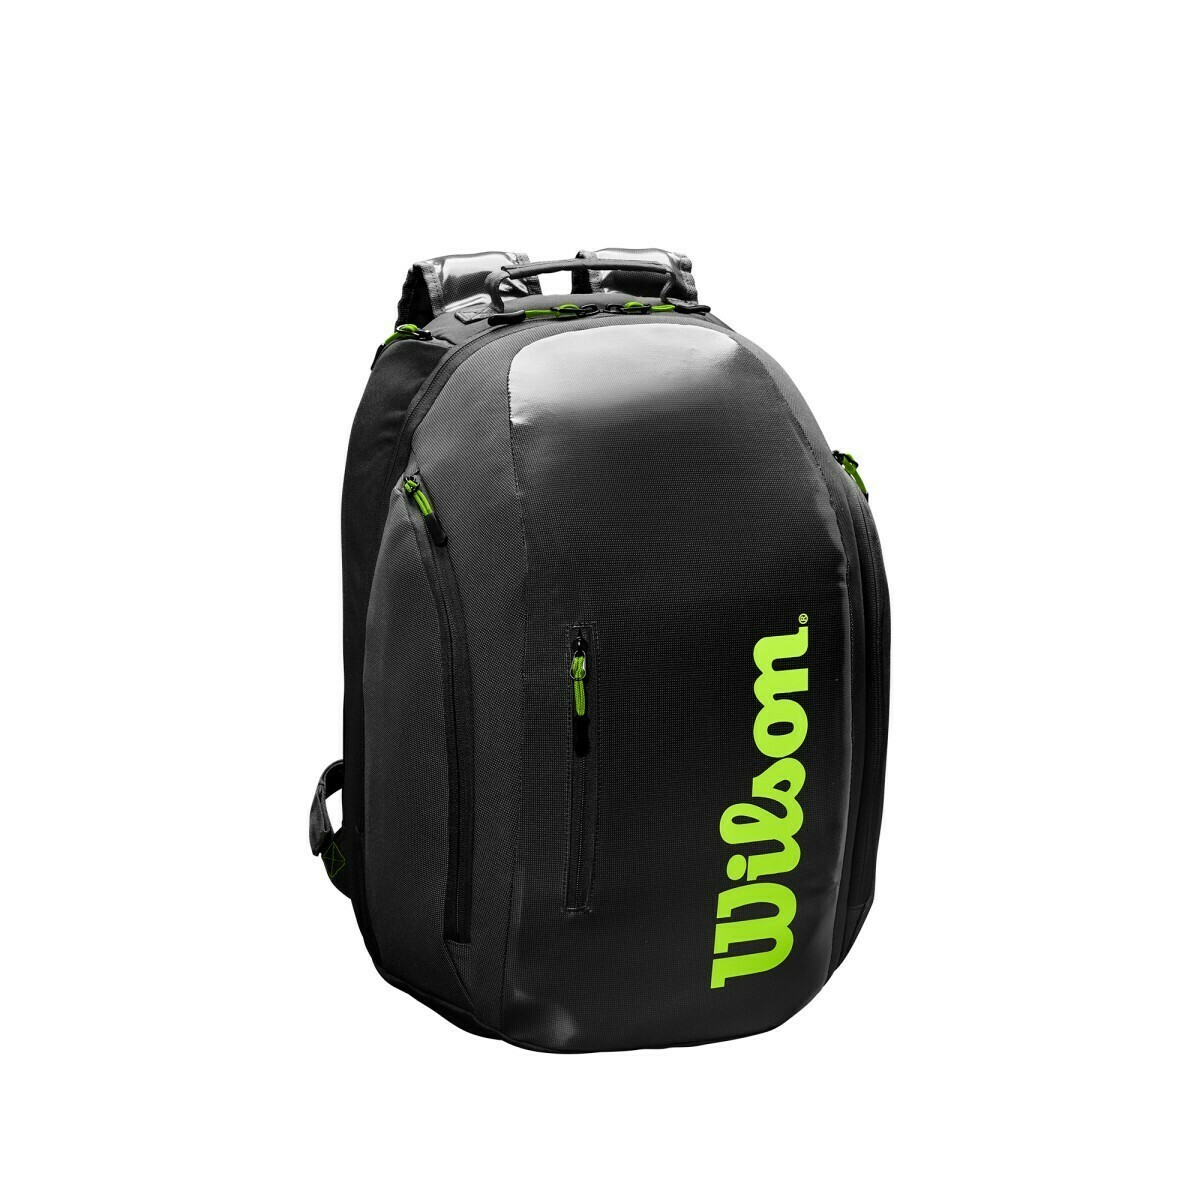 Wilson Super Tour Backpack - Charcoal/Green